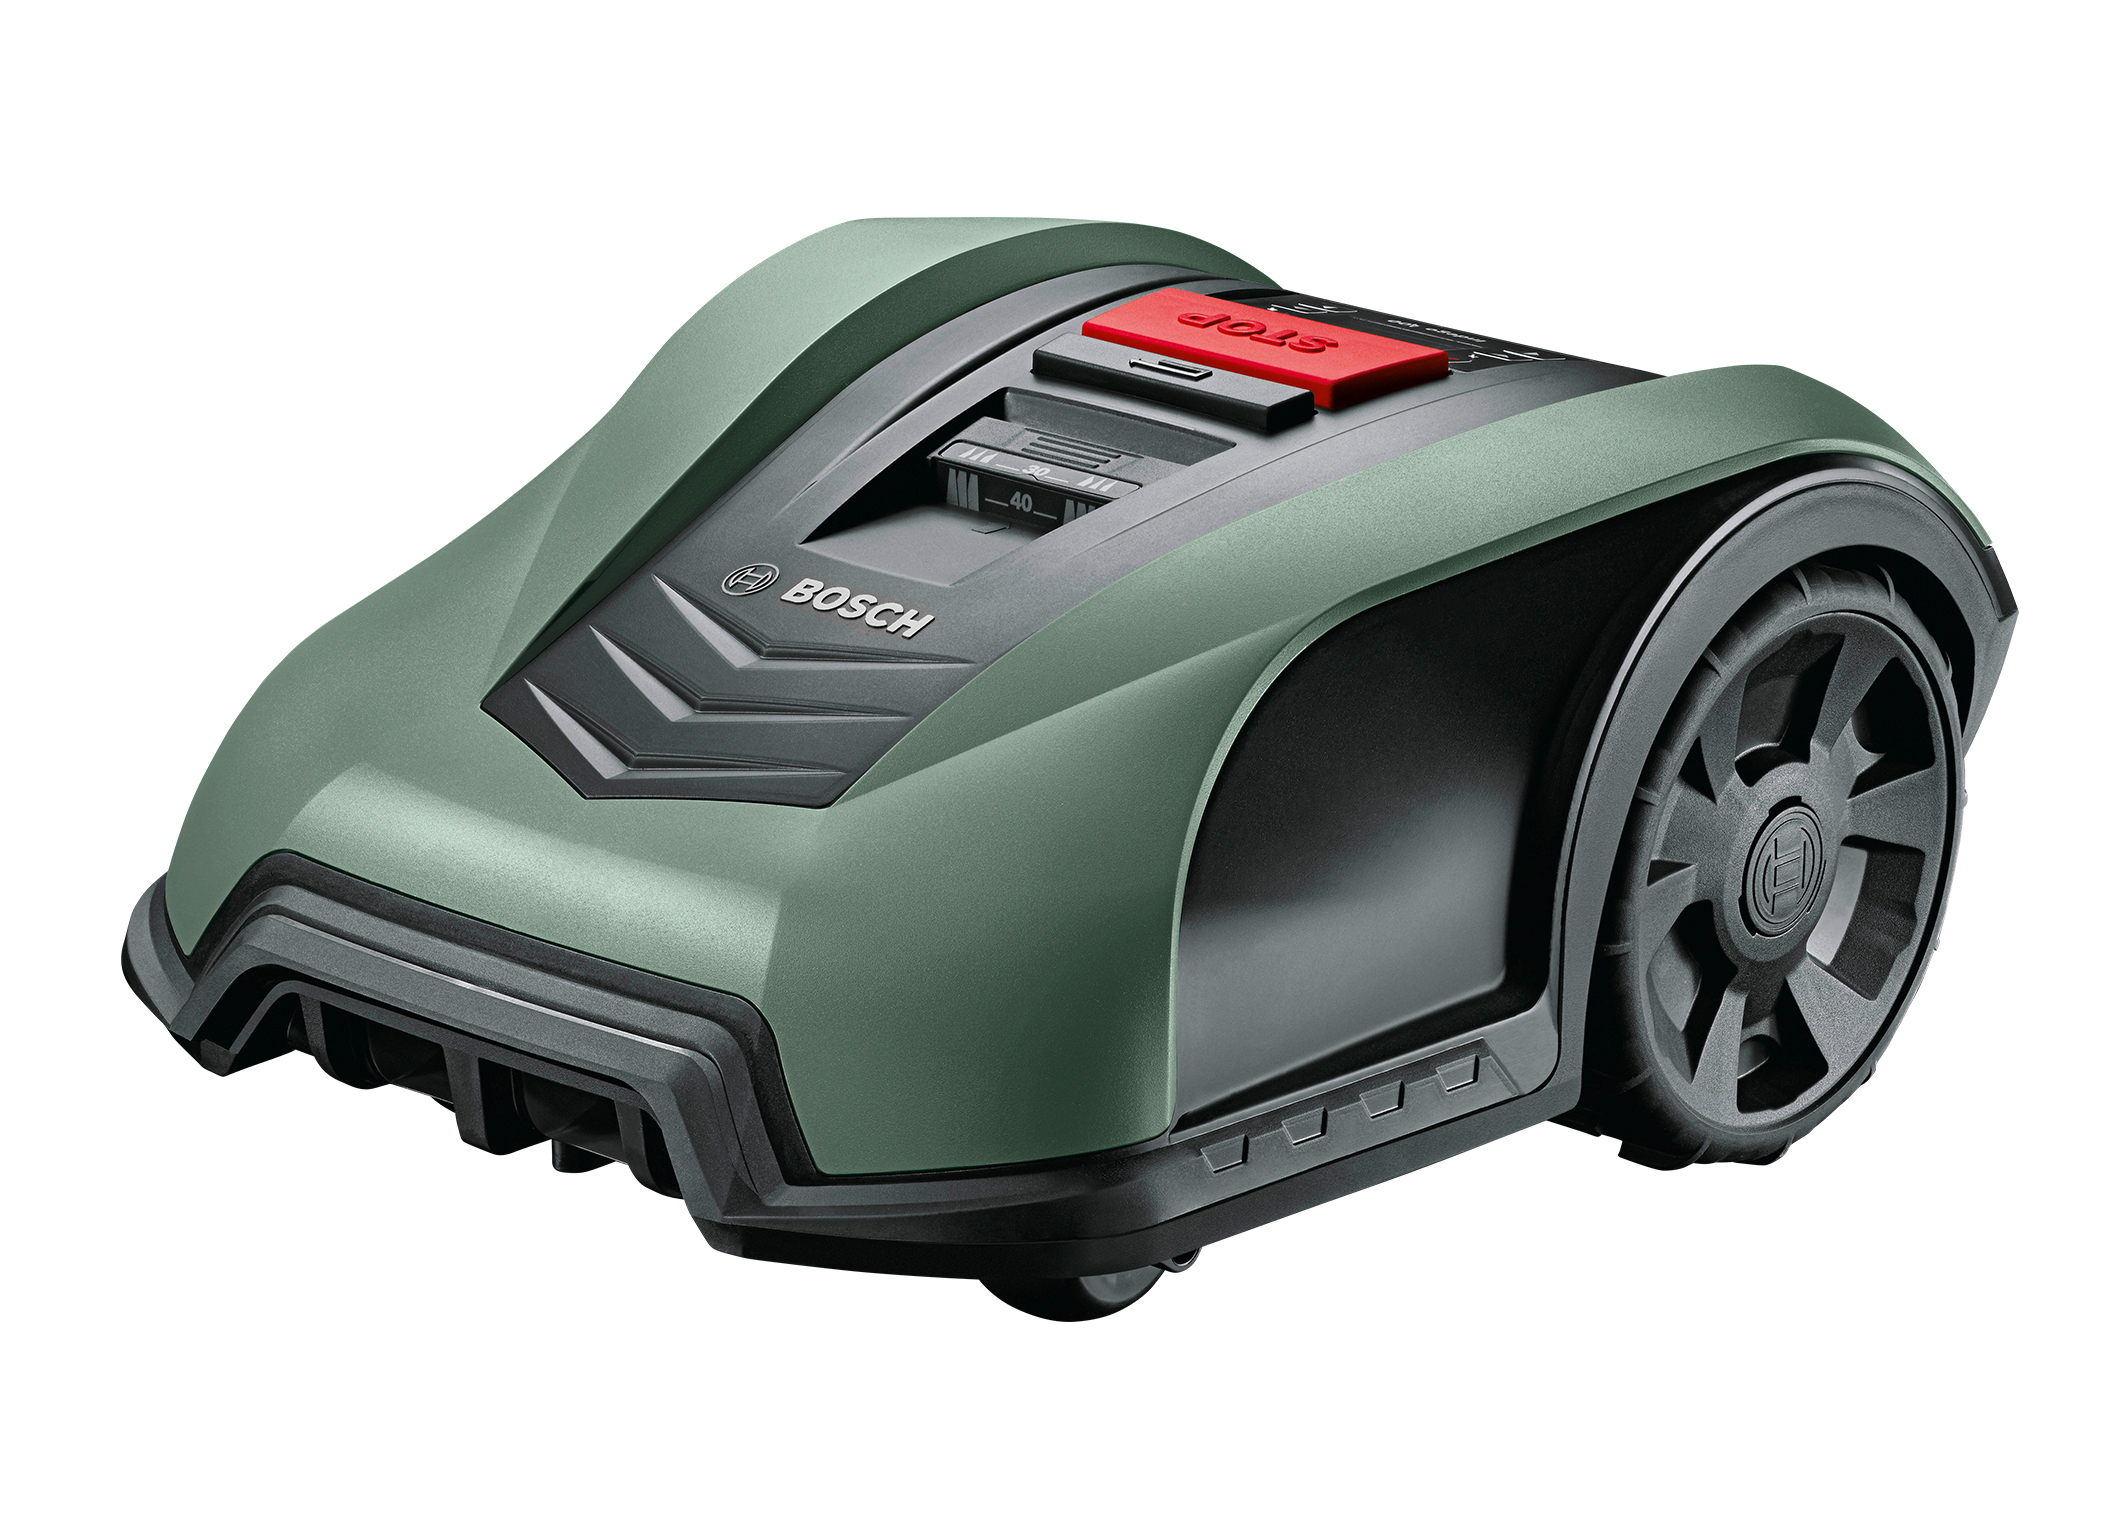 Even smarter, even more convenient: New Bosch Indego S+ robotic lawnmower